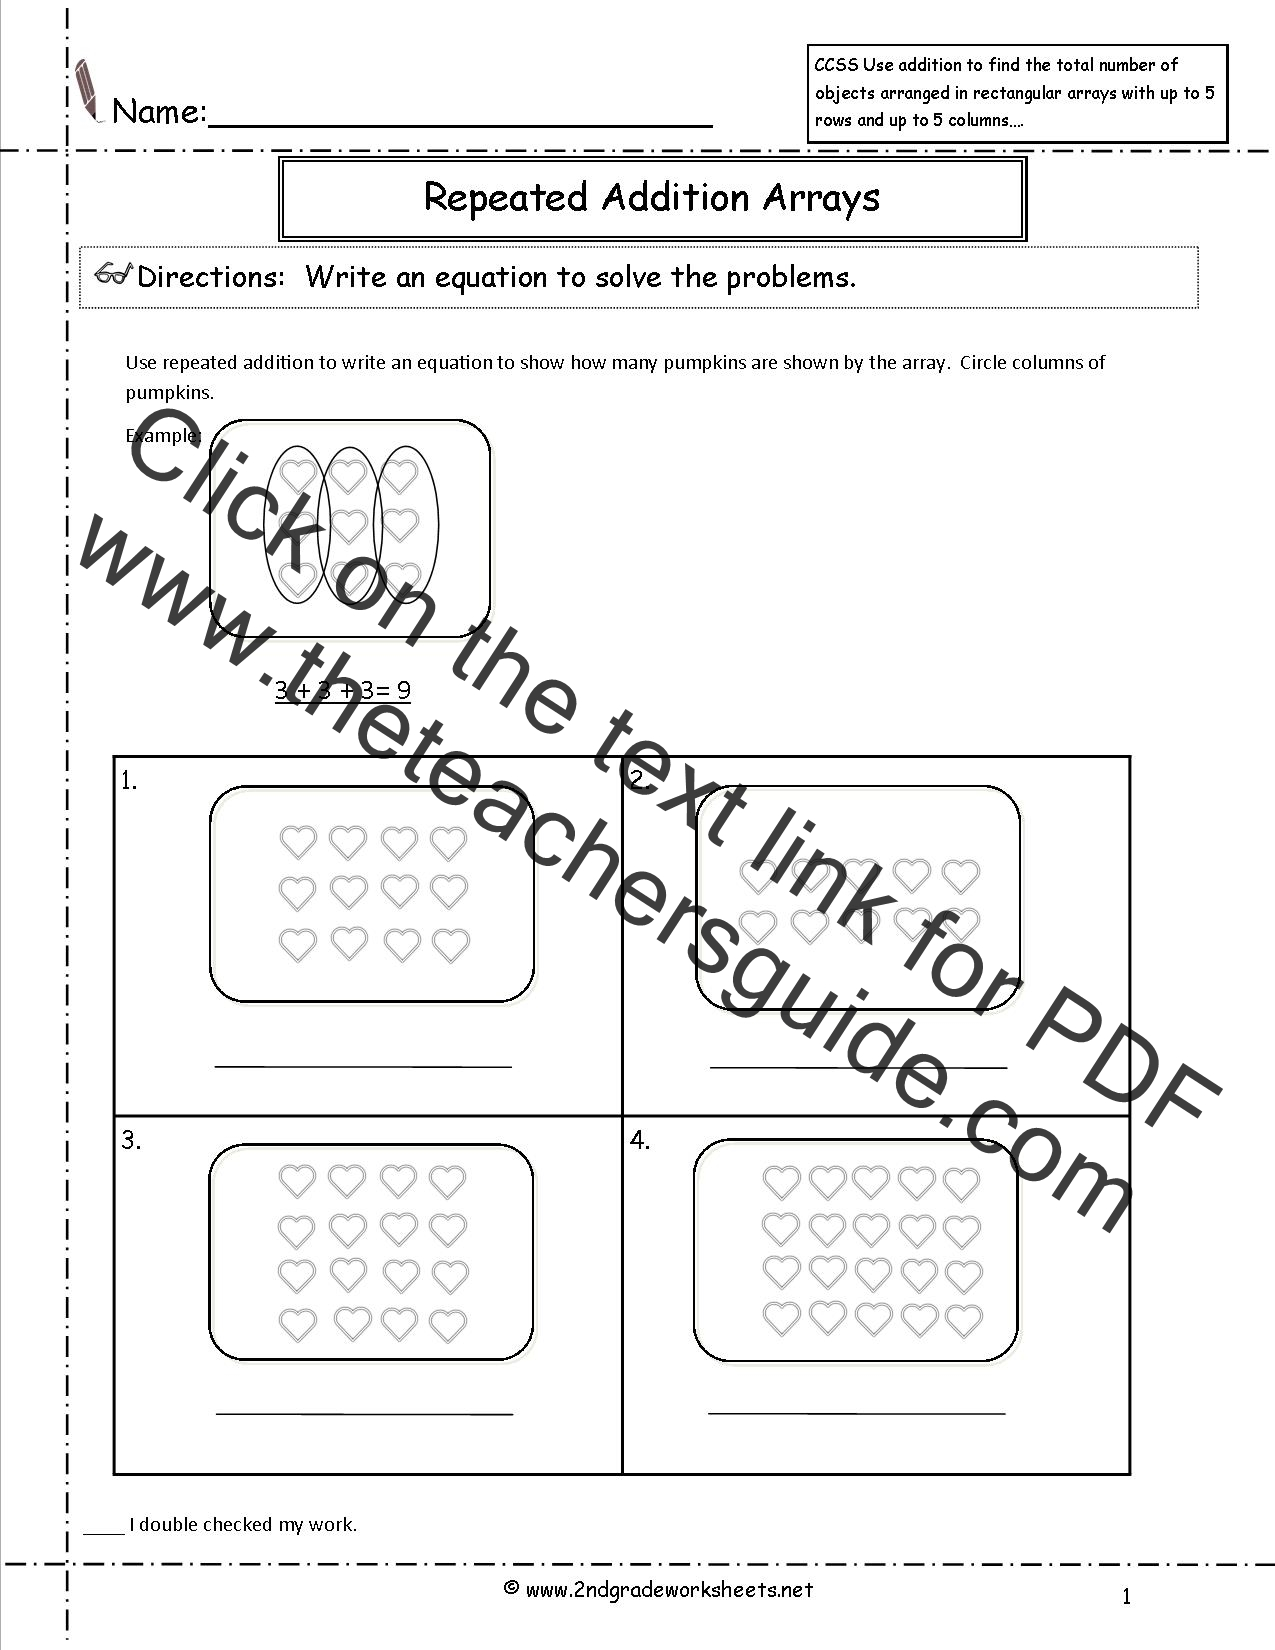 CCSS 2OA4 Worksheets – Repeated Addition Worksheets